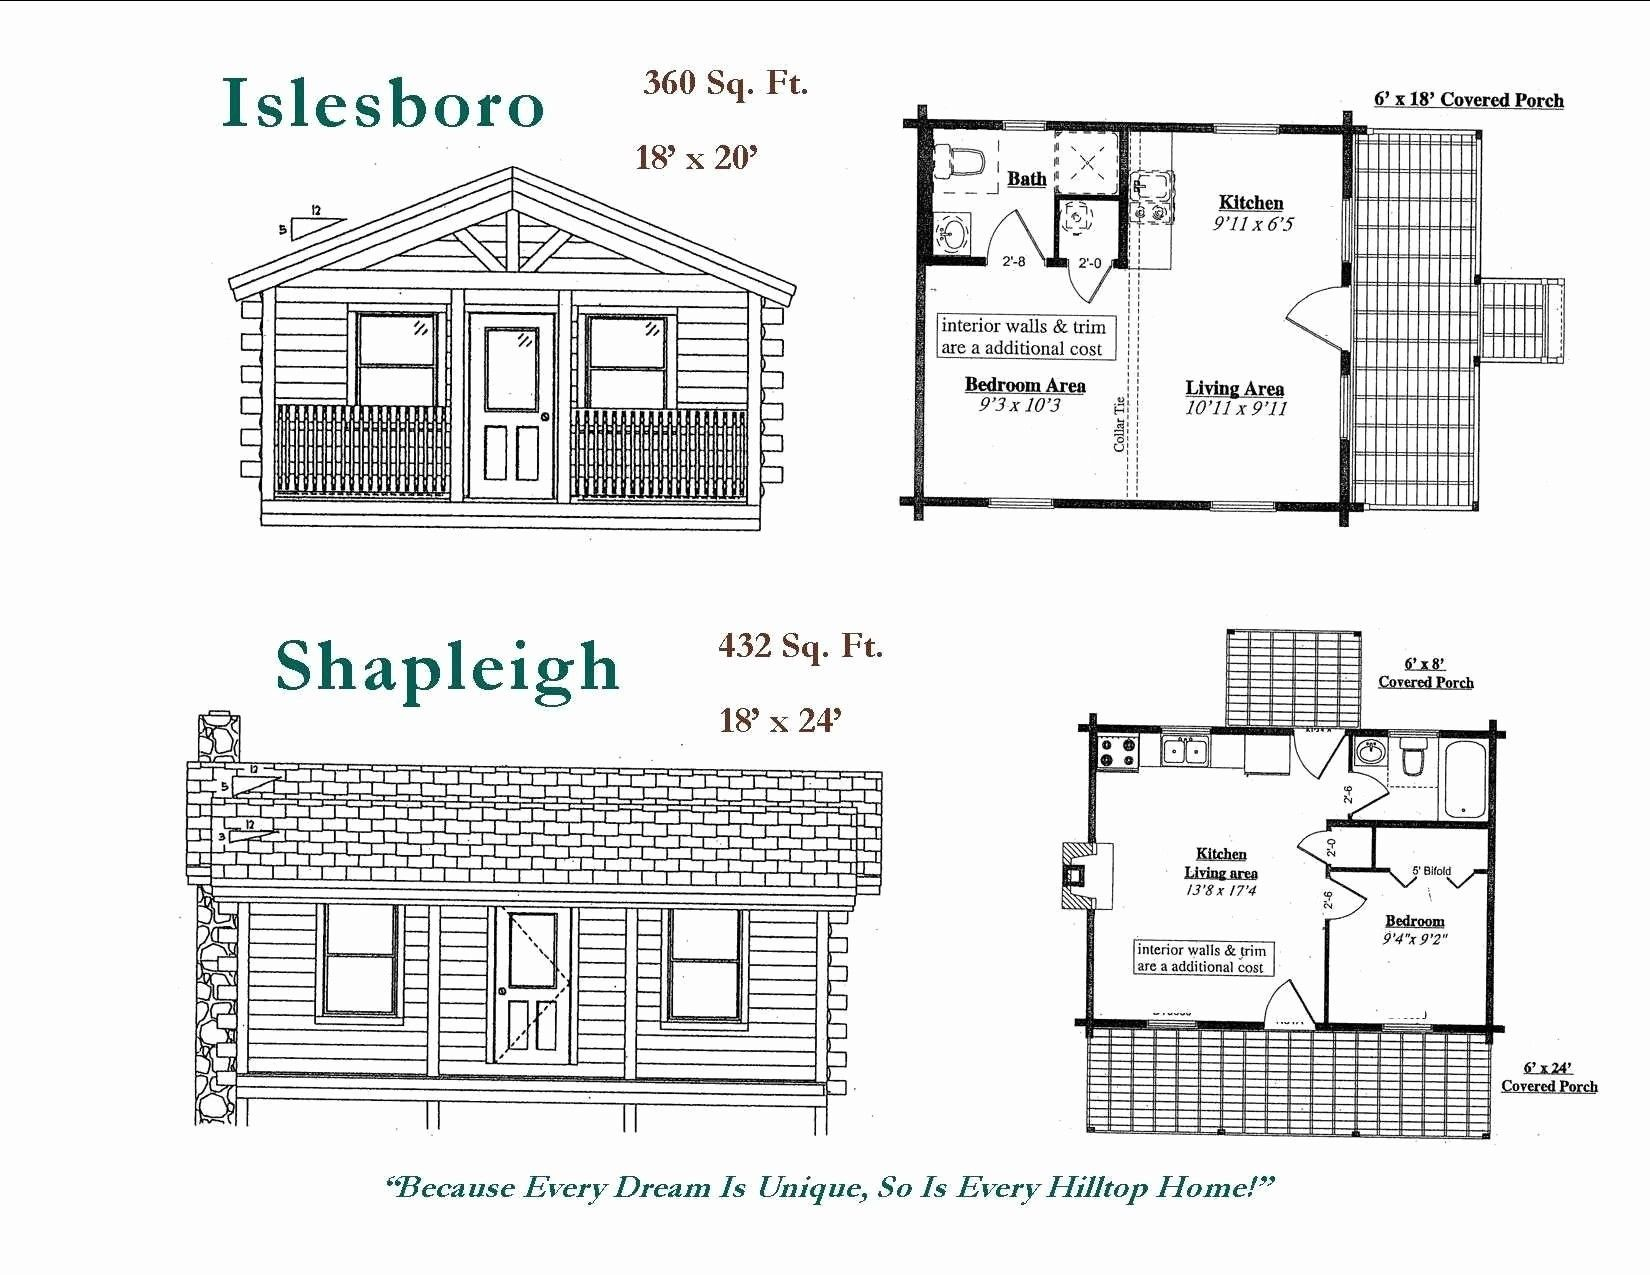 25 Clever Free Home Plans | House floor plans, House ... on simple one story house floor plans, farm ranch plans, ranch duplex floor plans, ranch cabin floor plans, ranch house floor plans, small country home floor plans, stone house floor plans, ranch contemporary house plans, ranch barn plans, ranch style farmhouse, ranch prairie house plans, ranch condominium floor plans, ranch open floor plan homes, one story ranch house plans, 4-bedroom ranch floor plans, simple open ranch floor plans, very simple ranch house plans, ranch house plans with loft, farm building layout plans, vaulted ranch floor plans,